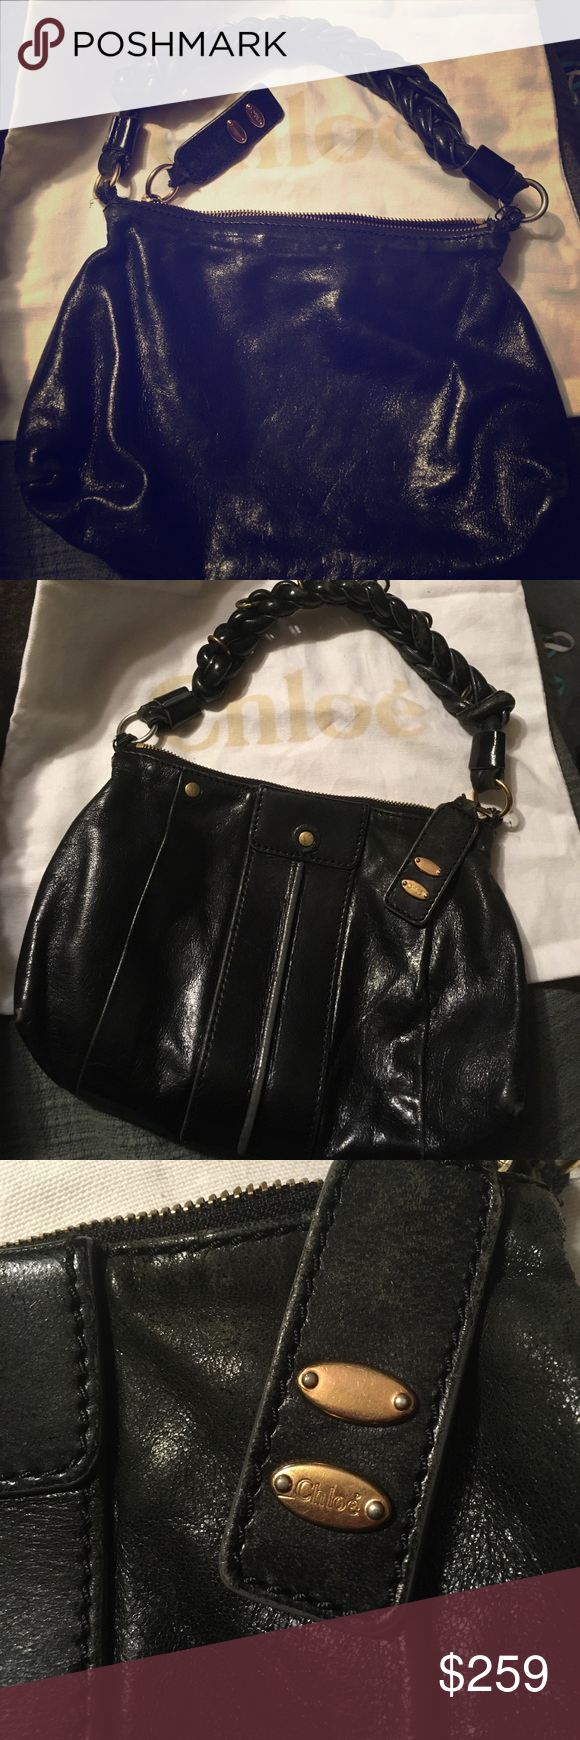 31060e9c82b SALE👜CHLOÉ Heloise hobo Guaranteed authentic preowned Chloé small black Heloise  hobo with detachable shoulder